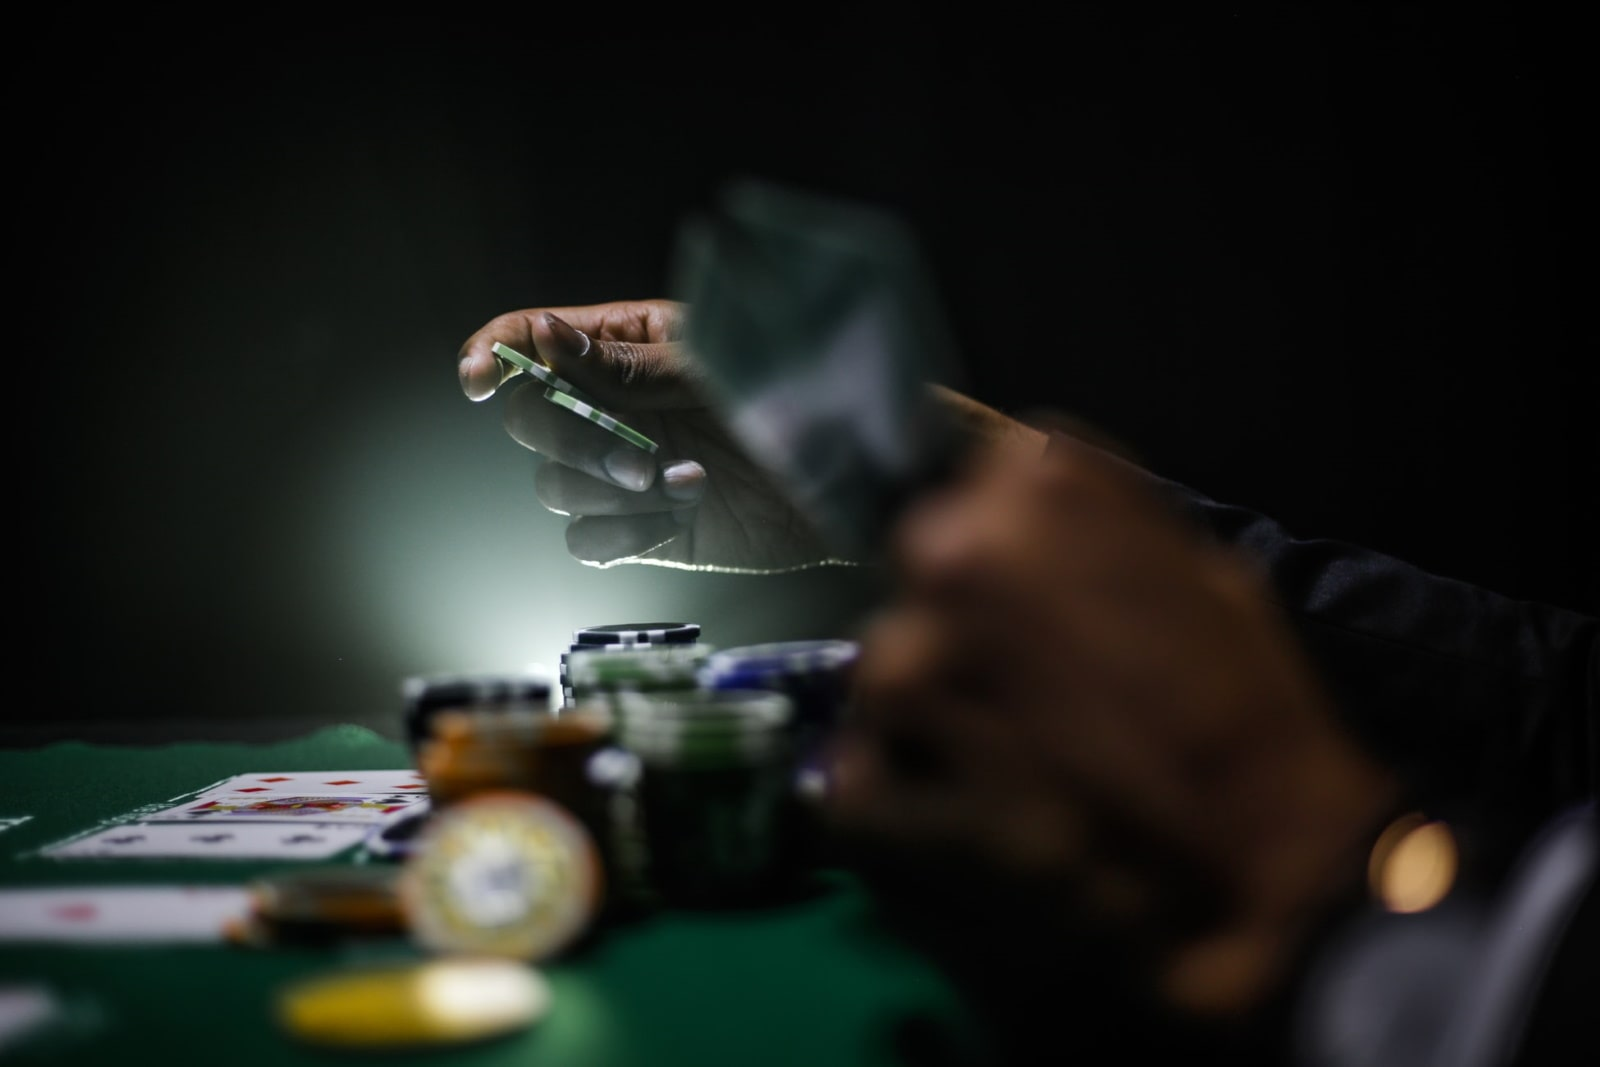 Poker by Keenan Constance on Unsplash